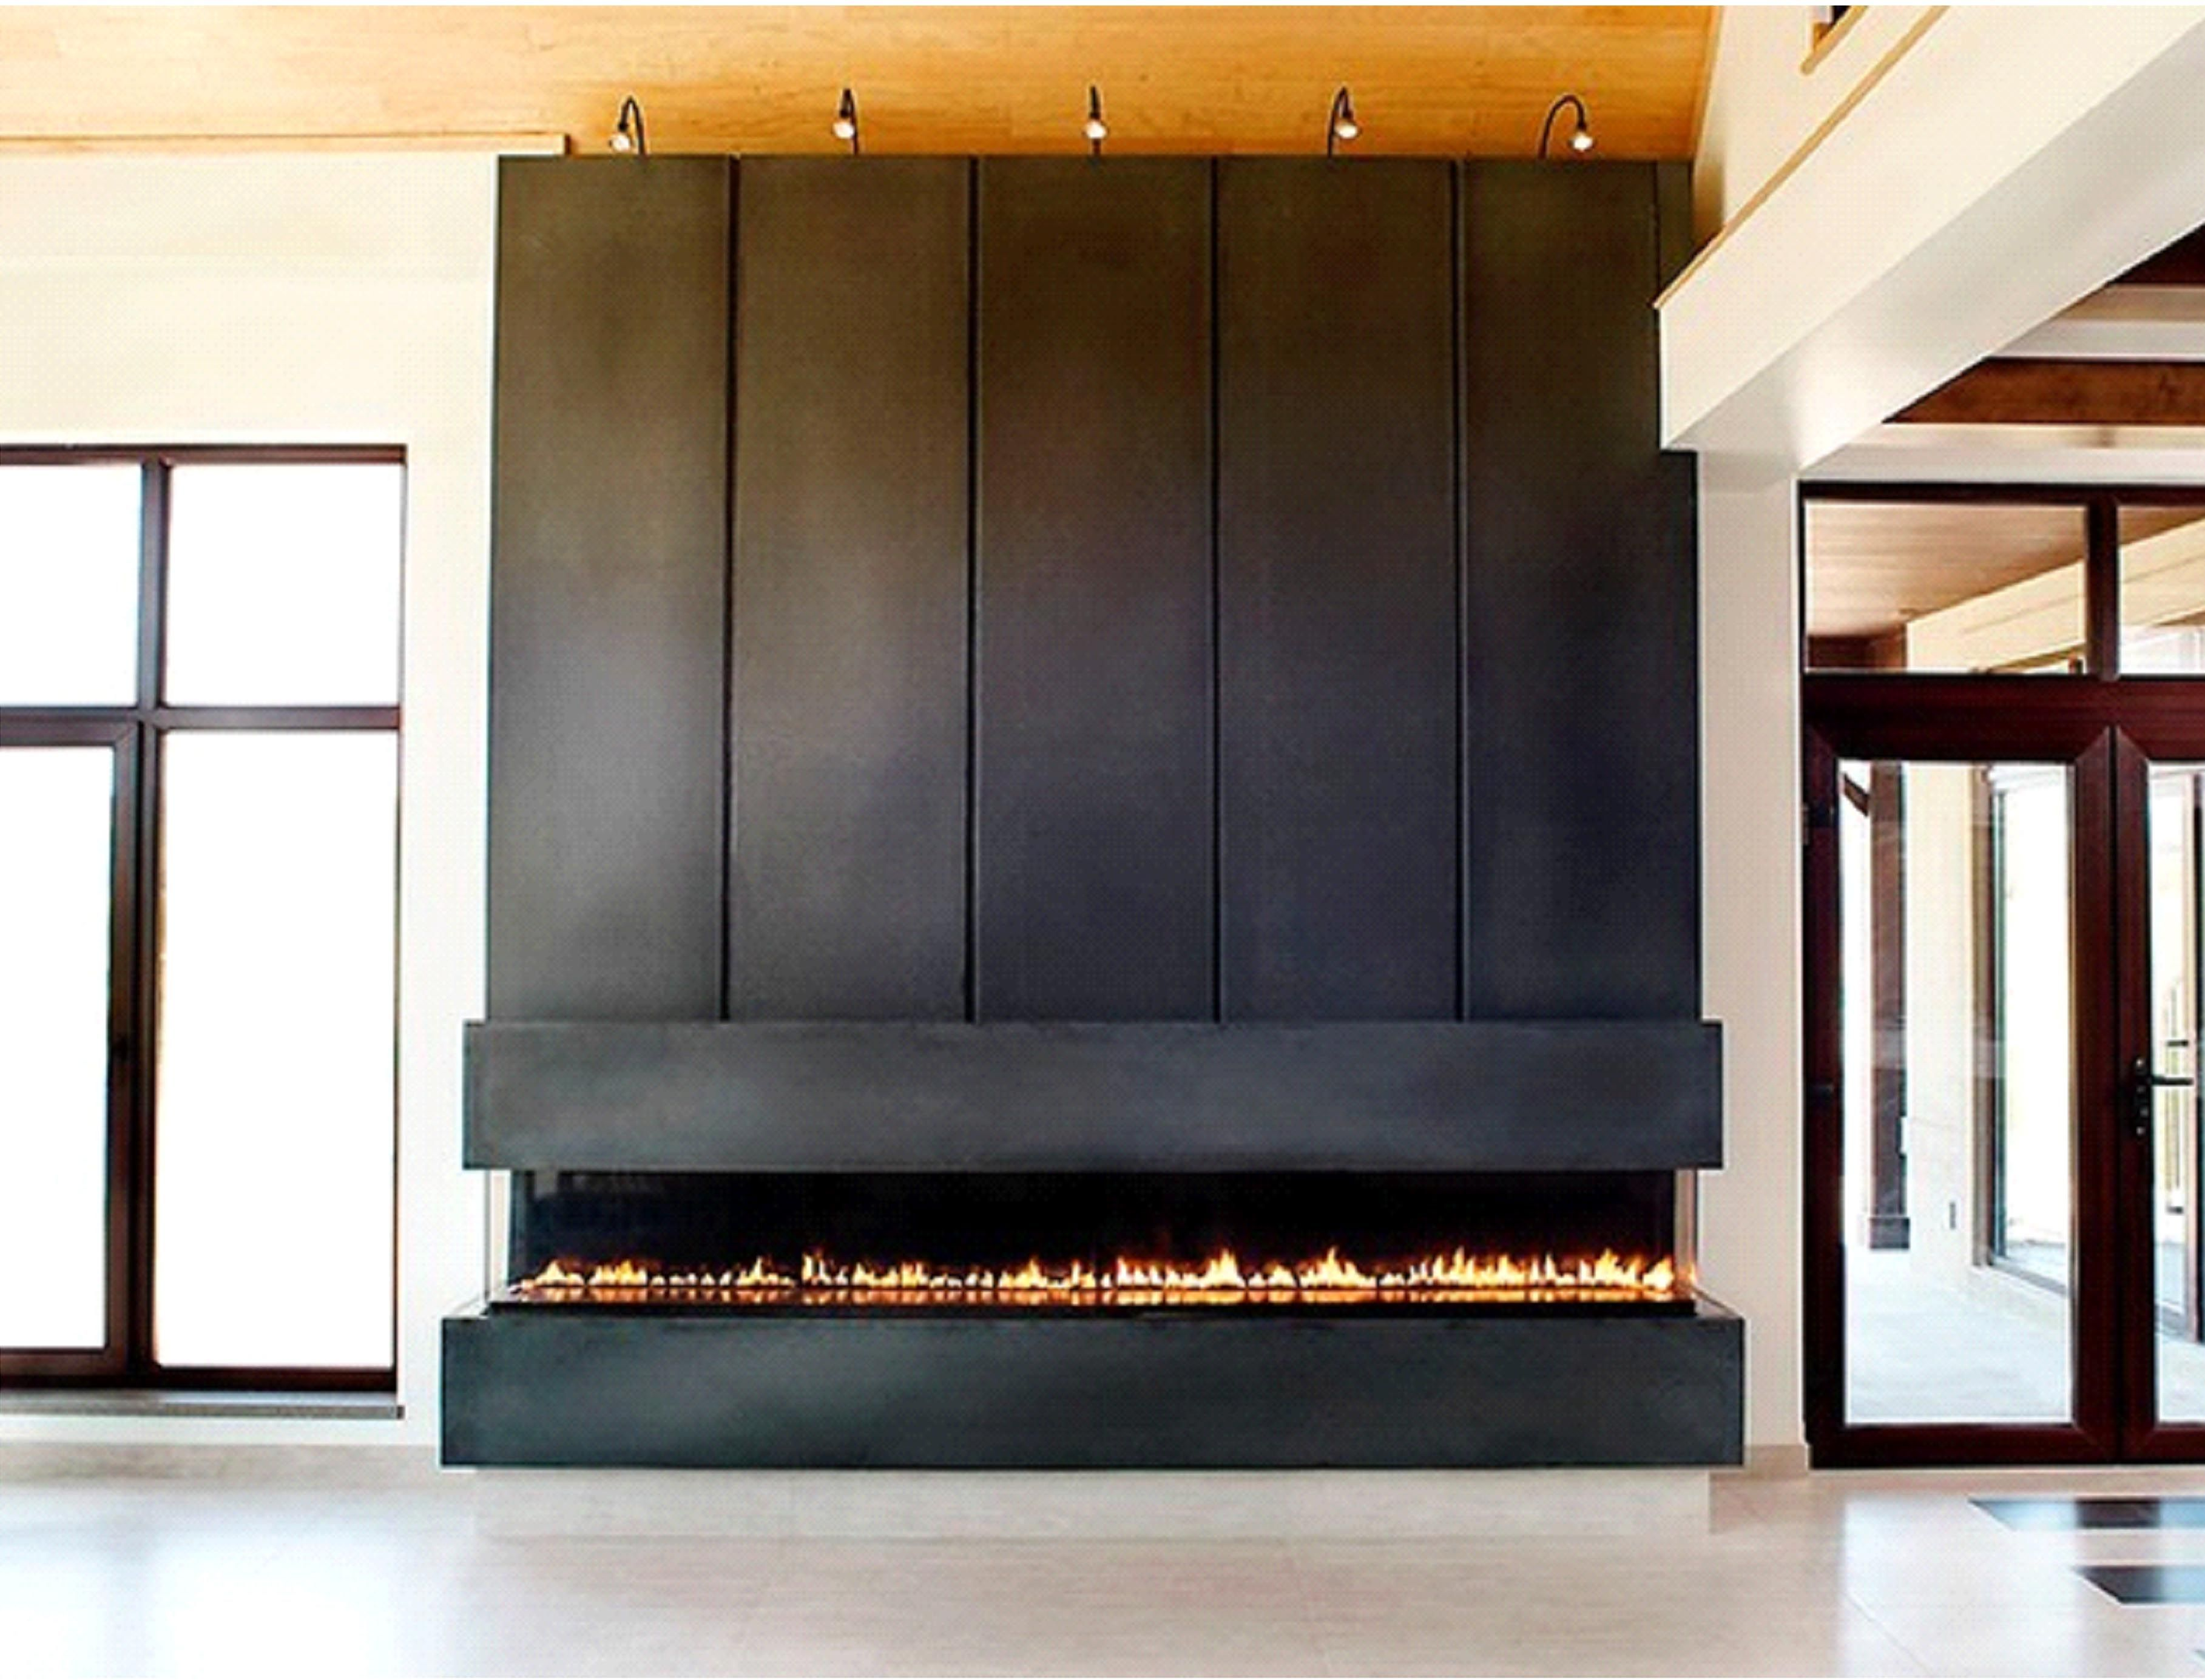 Cozy Thelpoprogramcom Led Wall Mounted Ethanol Fireplace Bathroom ...